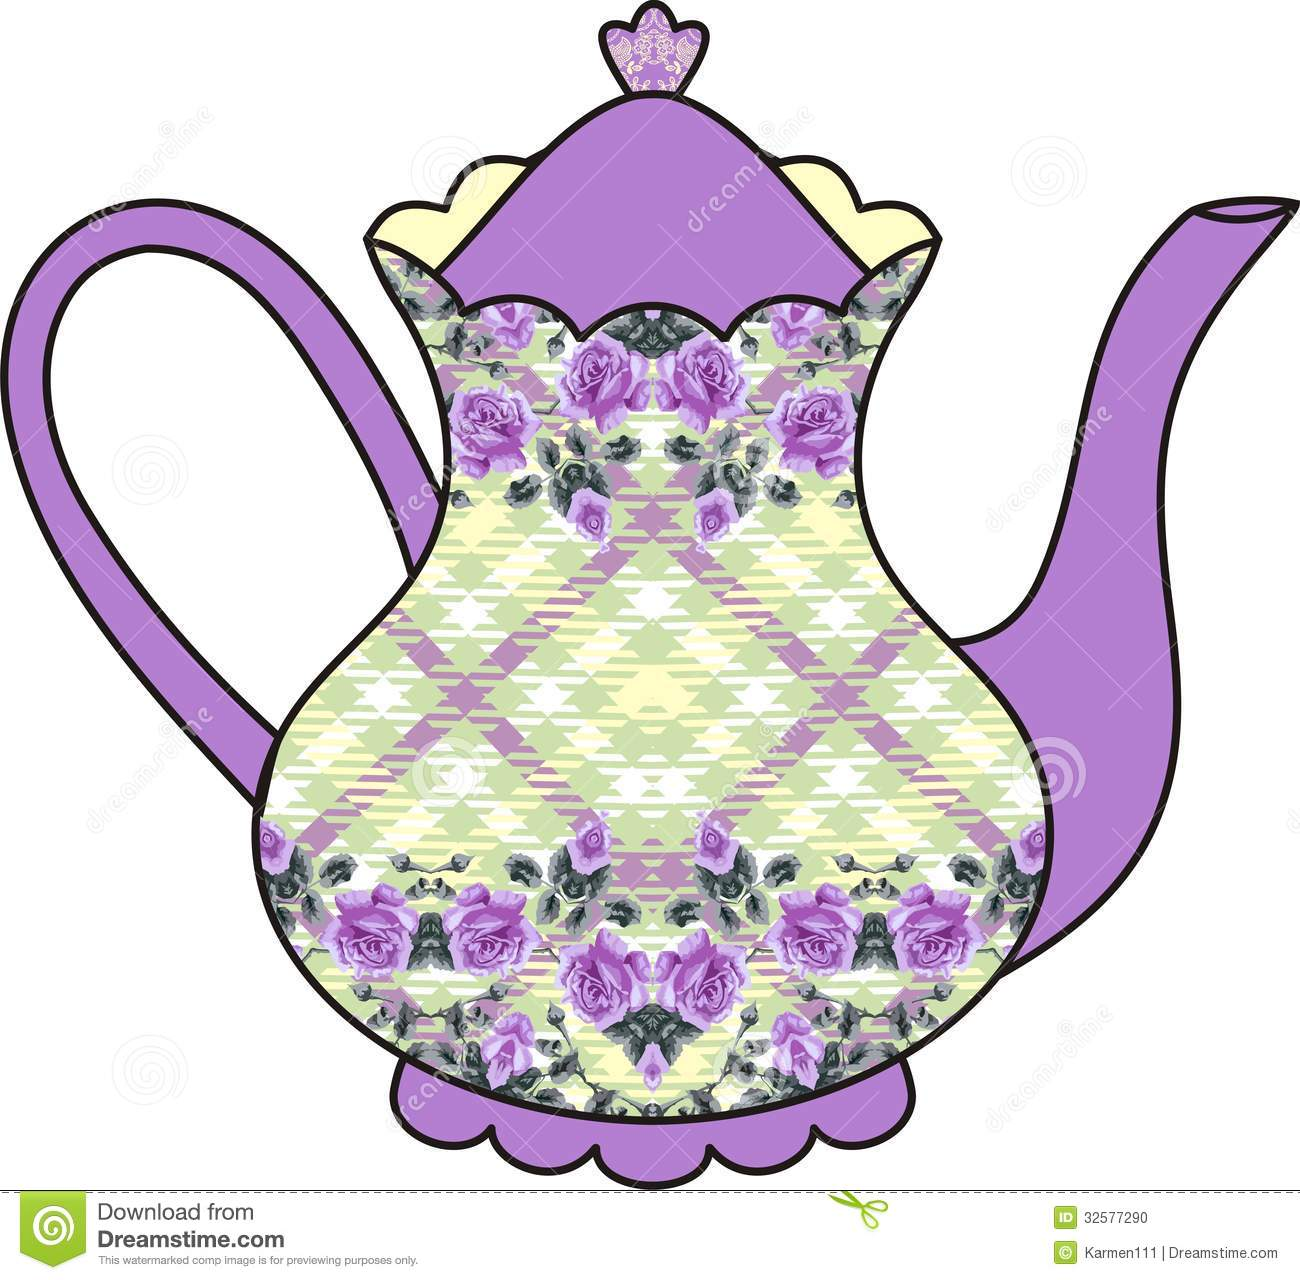 Tea Time Clip Art Floral Roses Teapot Ti-Tea Time Clip Art Floral Roses Teapot Time For-6